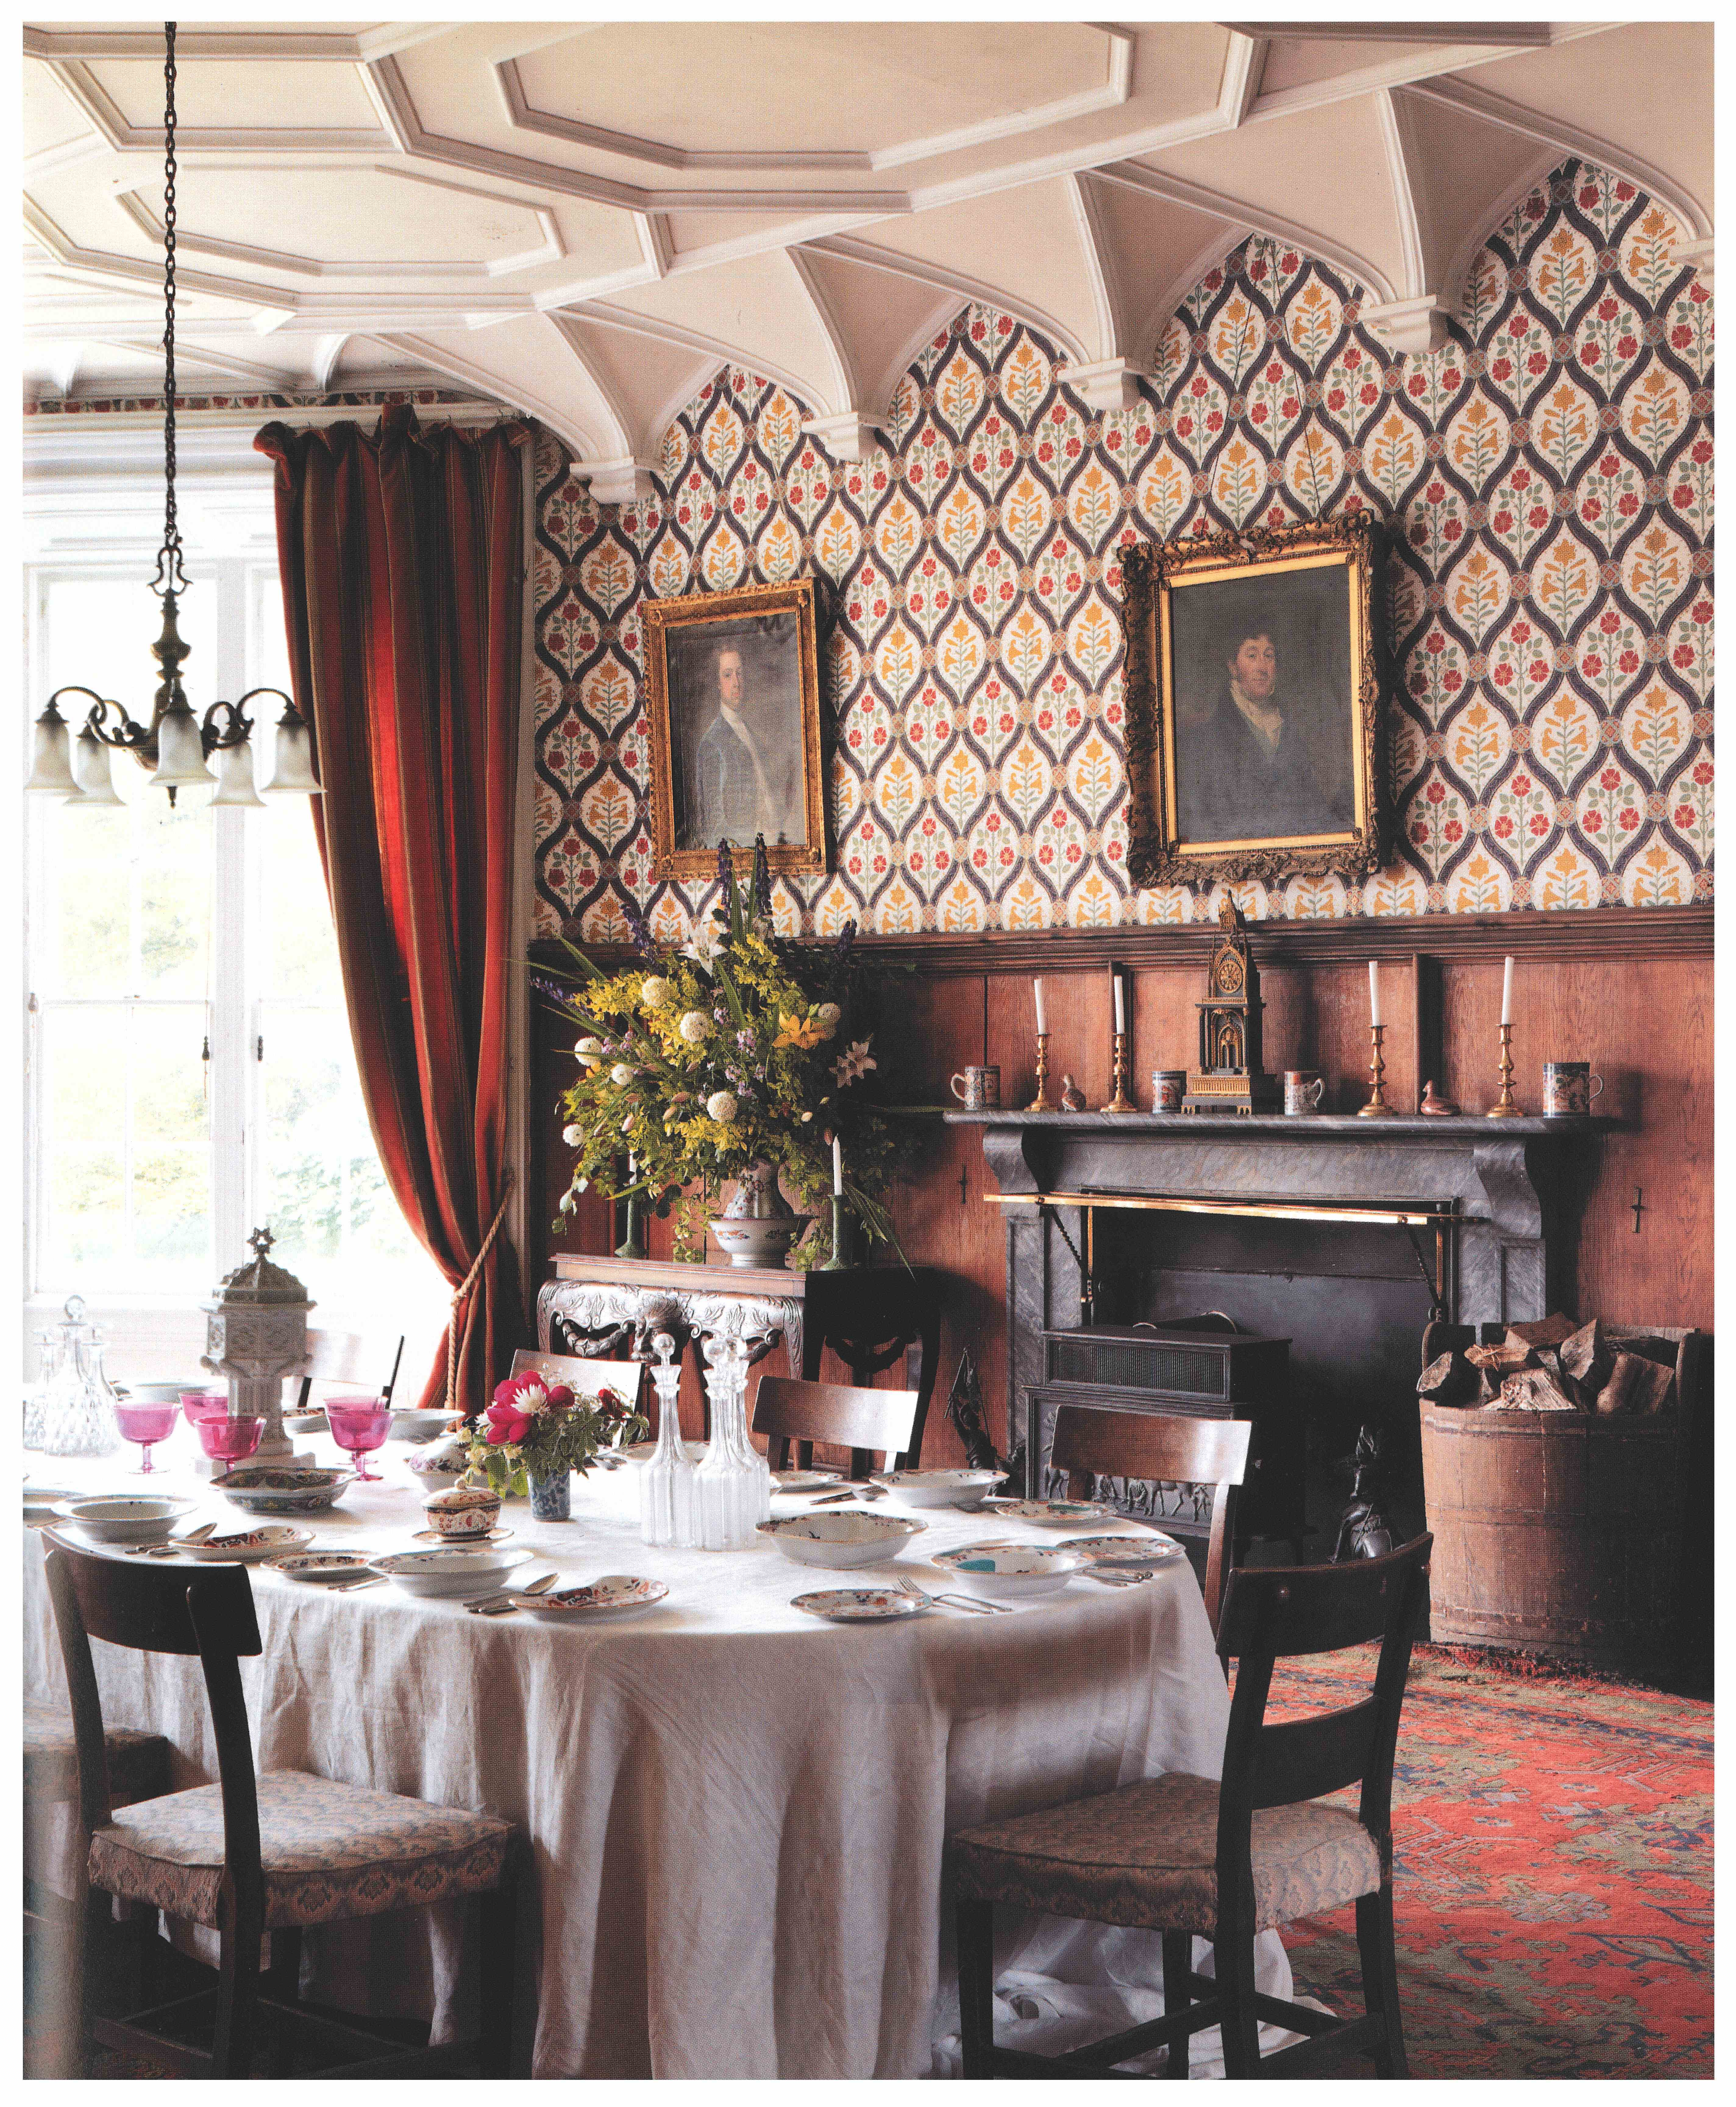 Dining Room at Tullynally, County Westmeath. ©CICO Books 2009 Simon Brown